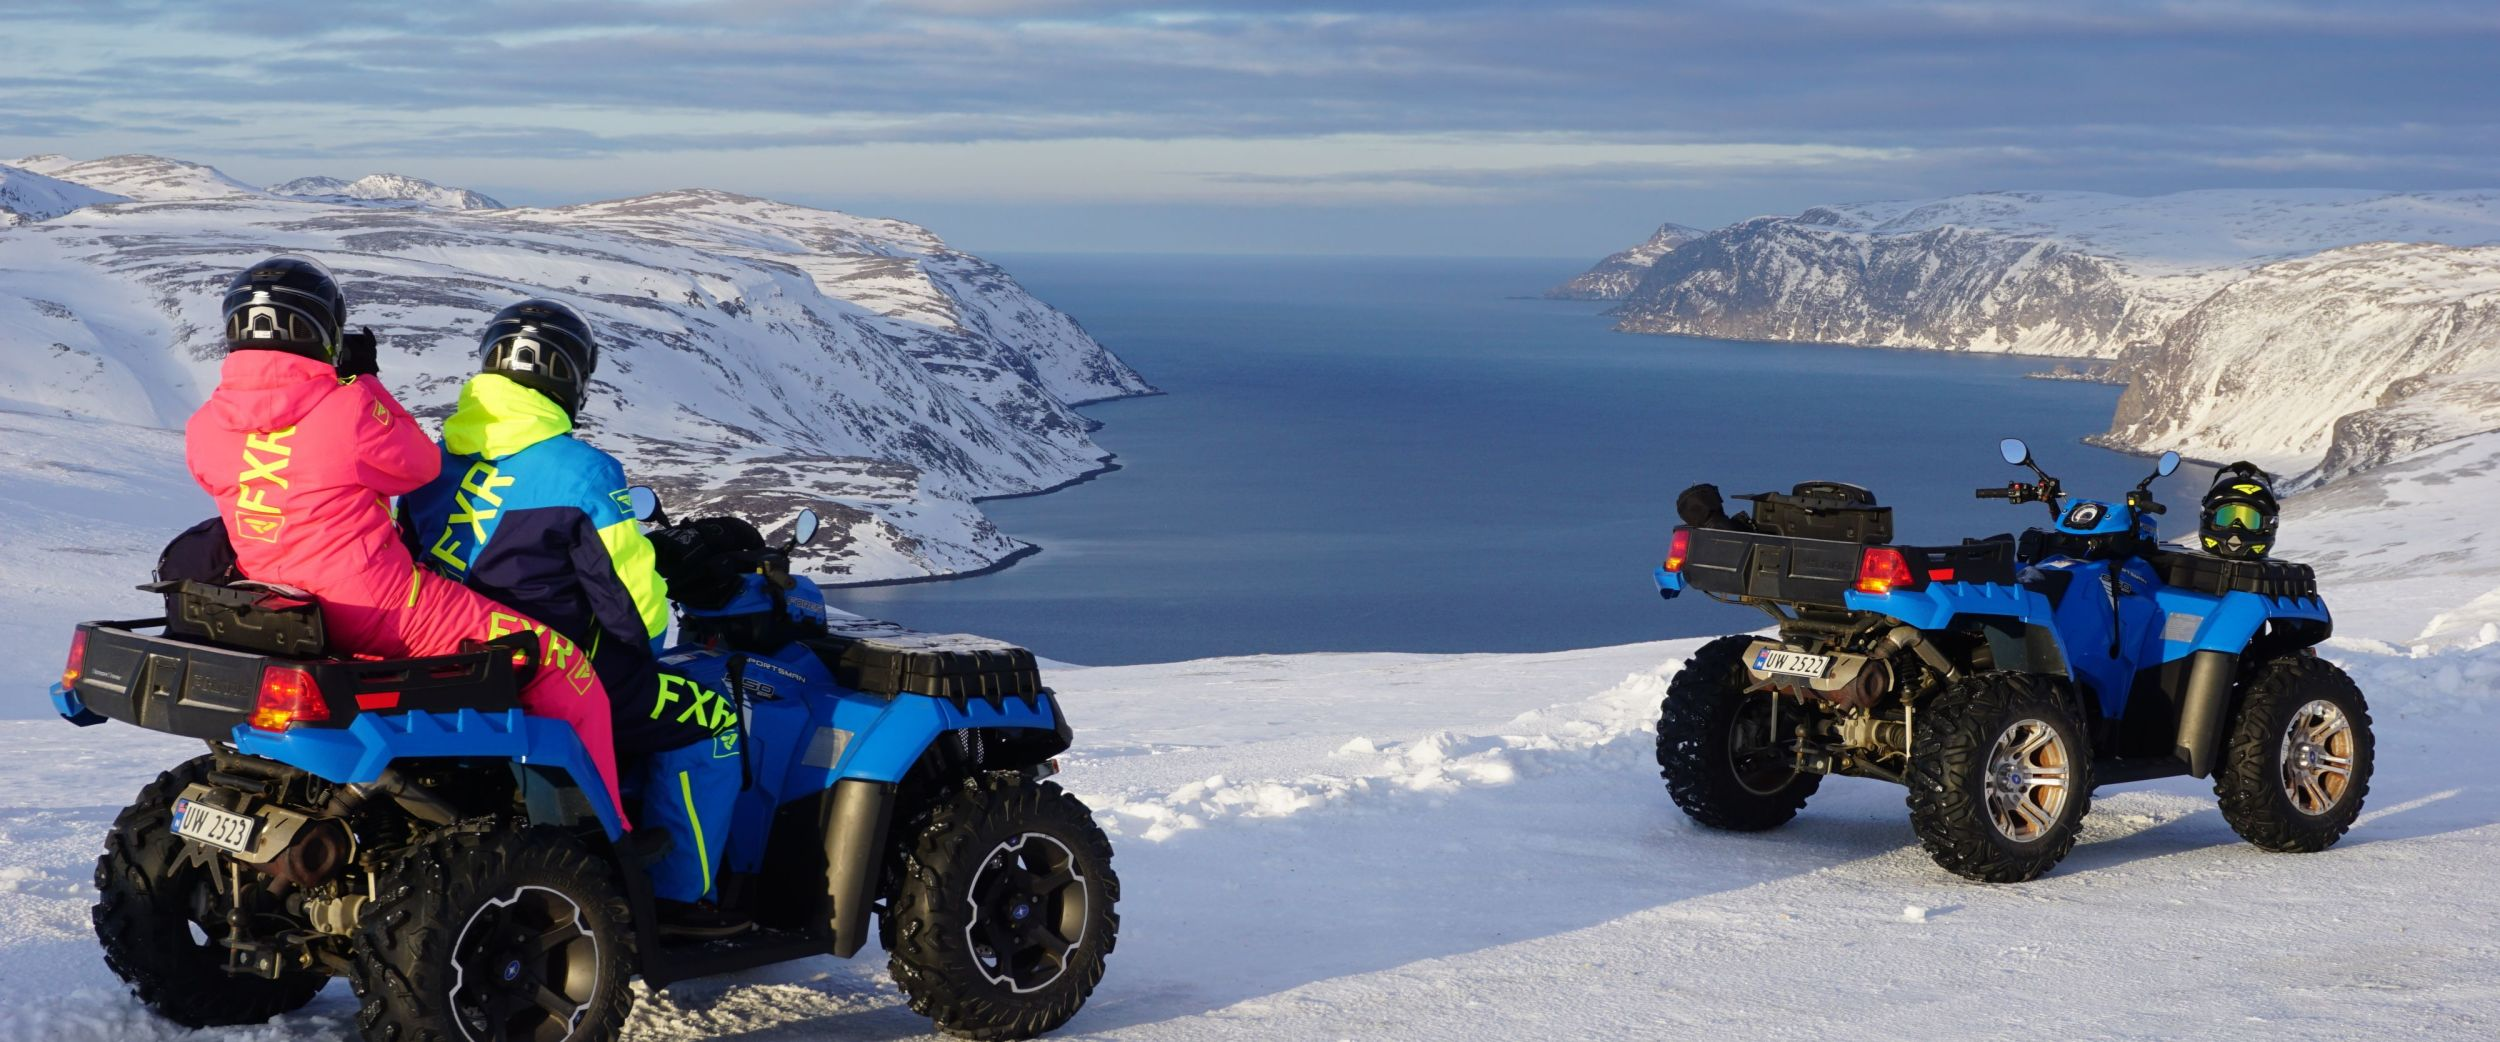 Quadbiking with fjordview at the Northcape in the winter.